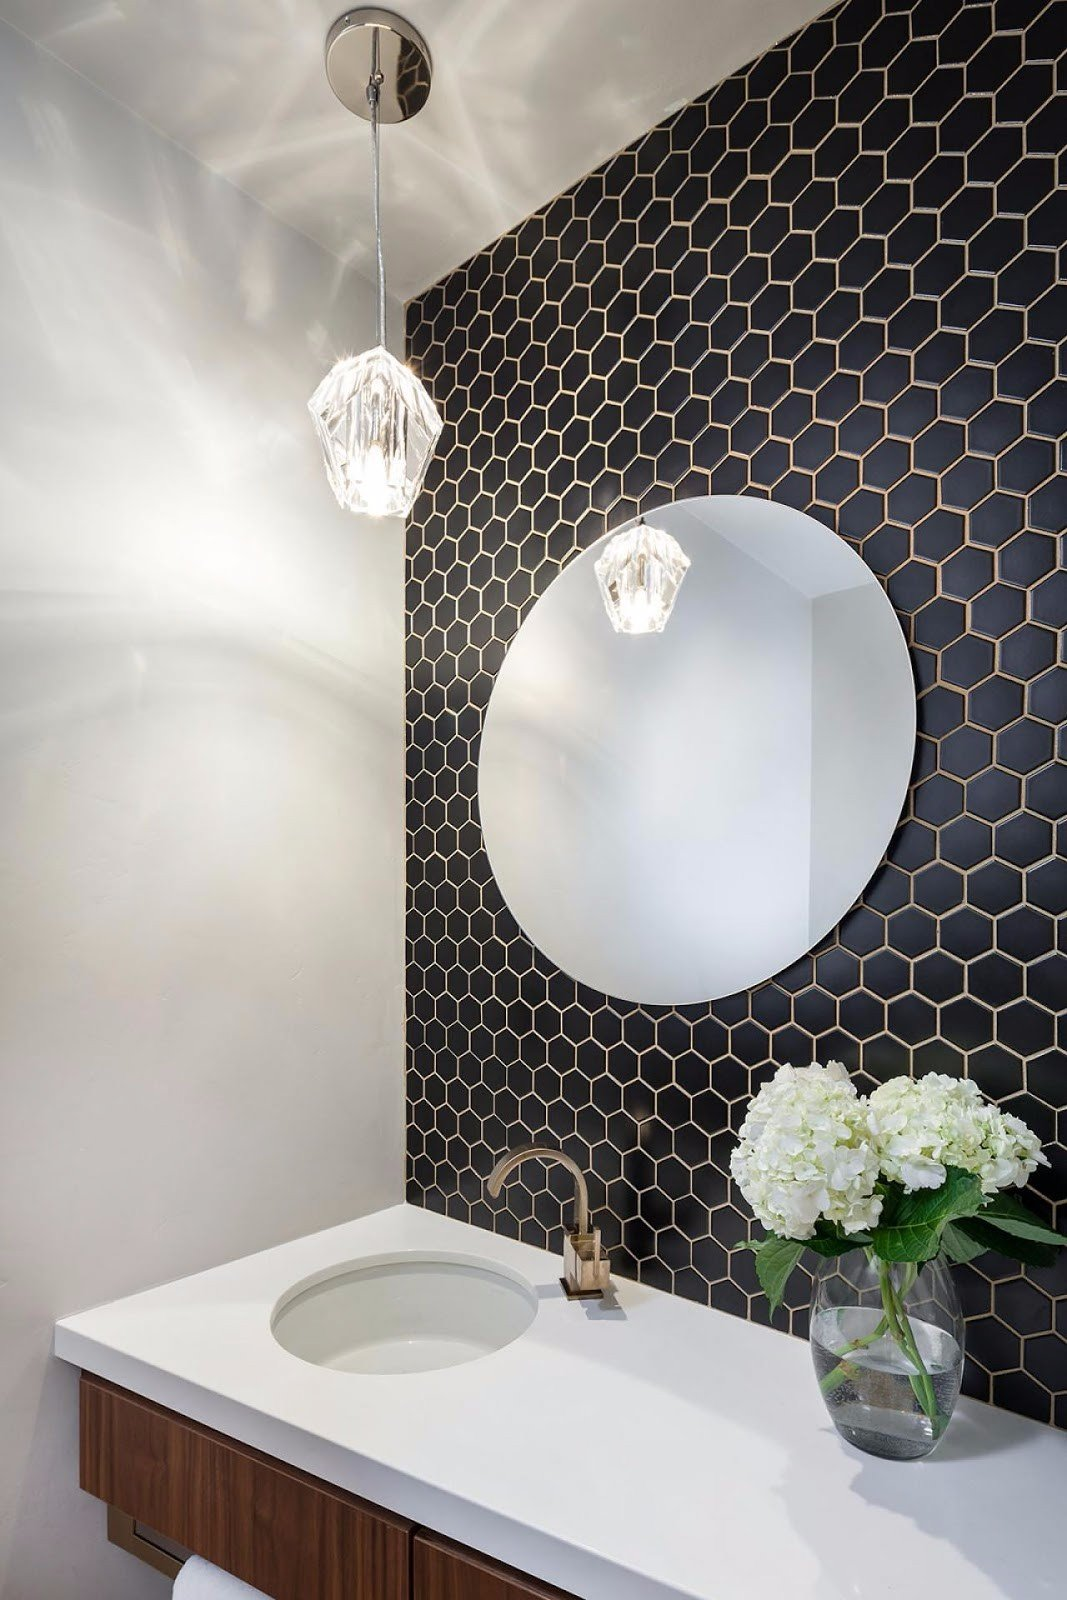 Smile about Tile: The Big Bathroom Trend for 2017